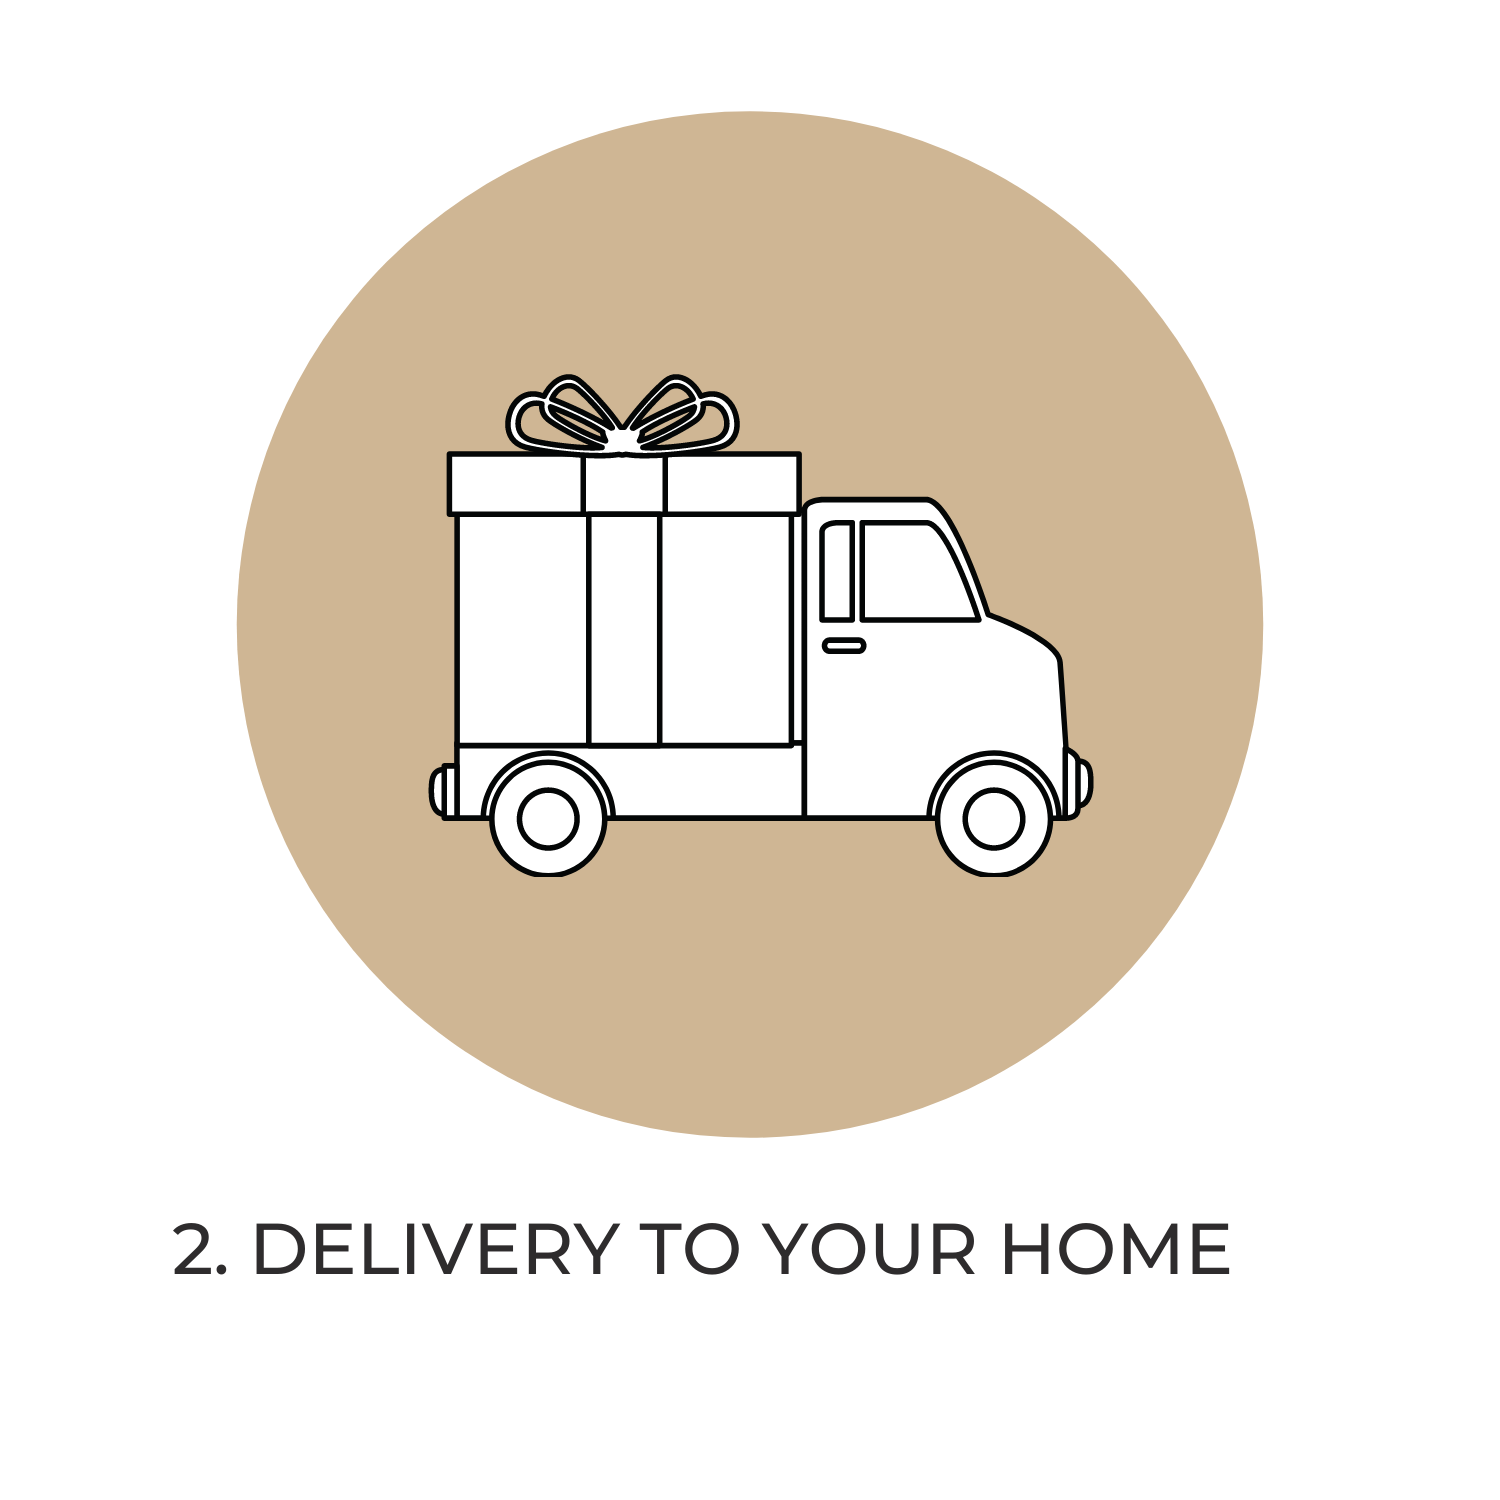 DELIVERY TO YOUR HOME